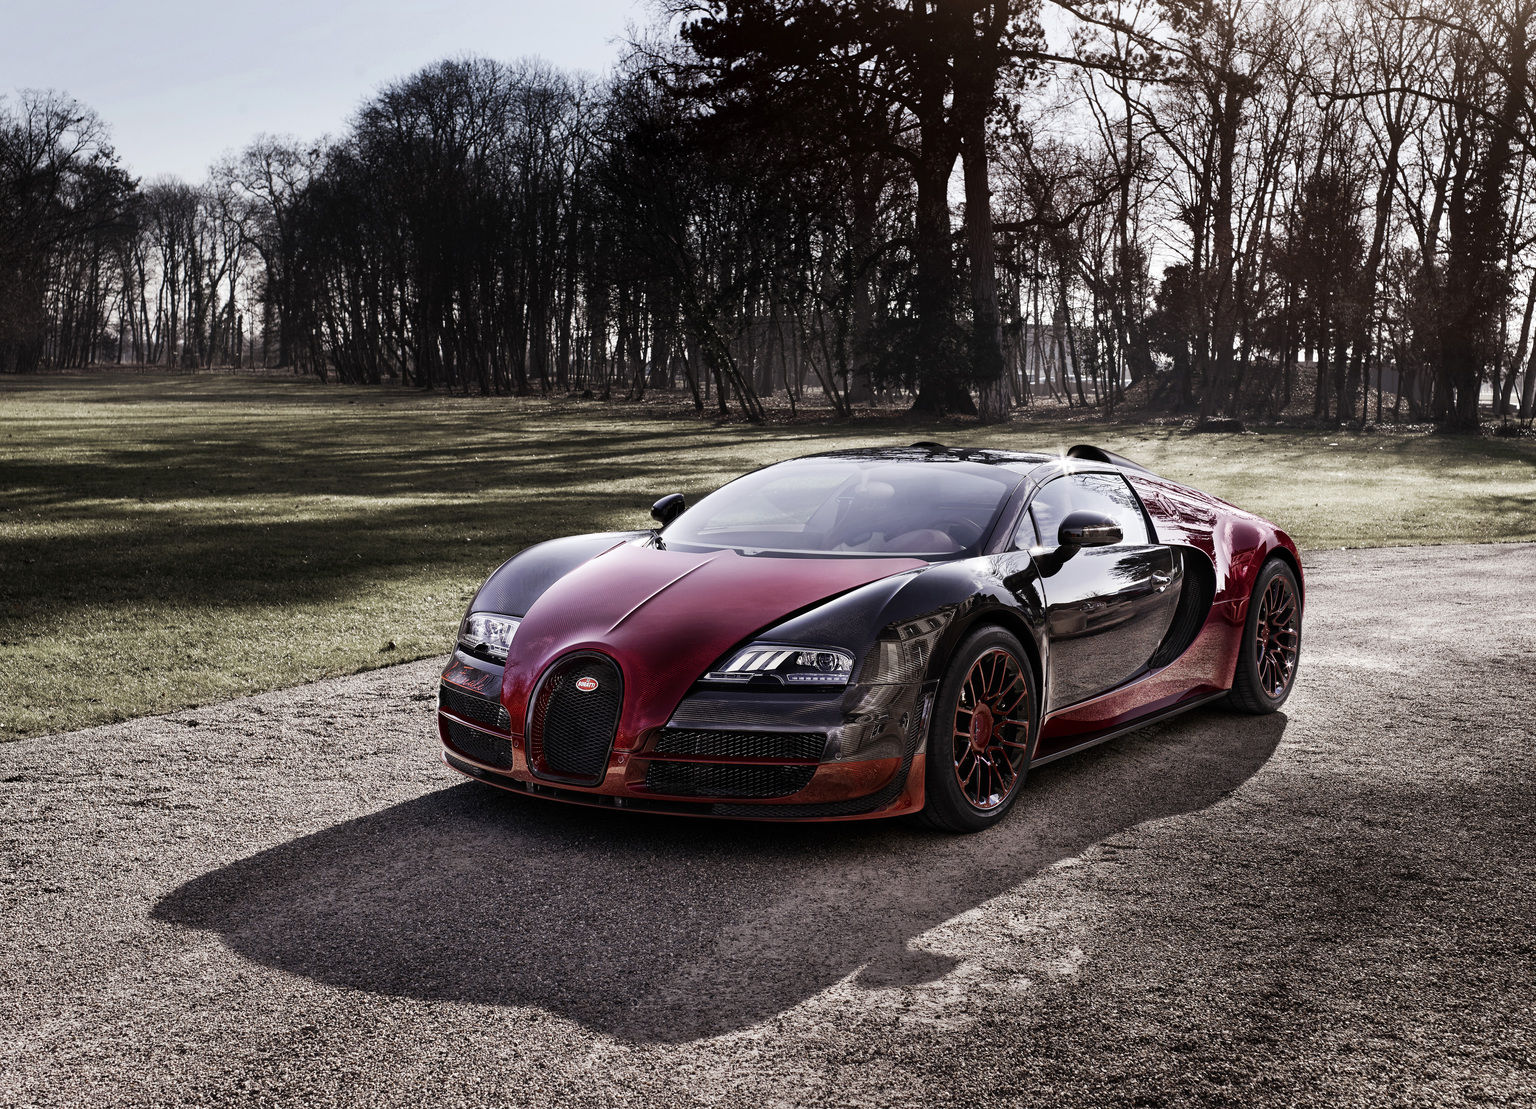 2015 Bugatti 16 4 Veyron Grand Sport Vitesse La Finale W16 Engine Diagram The Geneva International Motor Show Will Be Staged From 5 To 15 March At Palexpo Exhibition Centre In Exhibit Is Hall 1